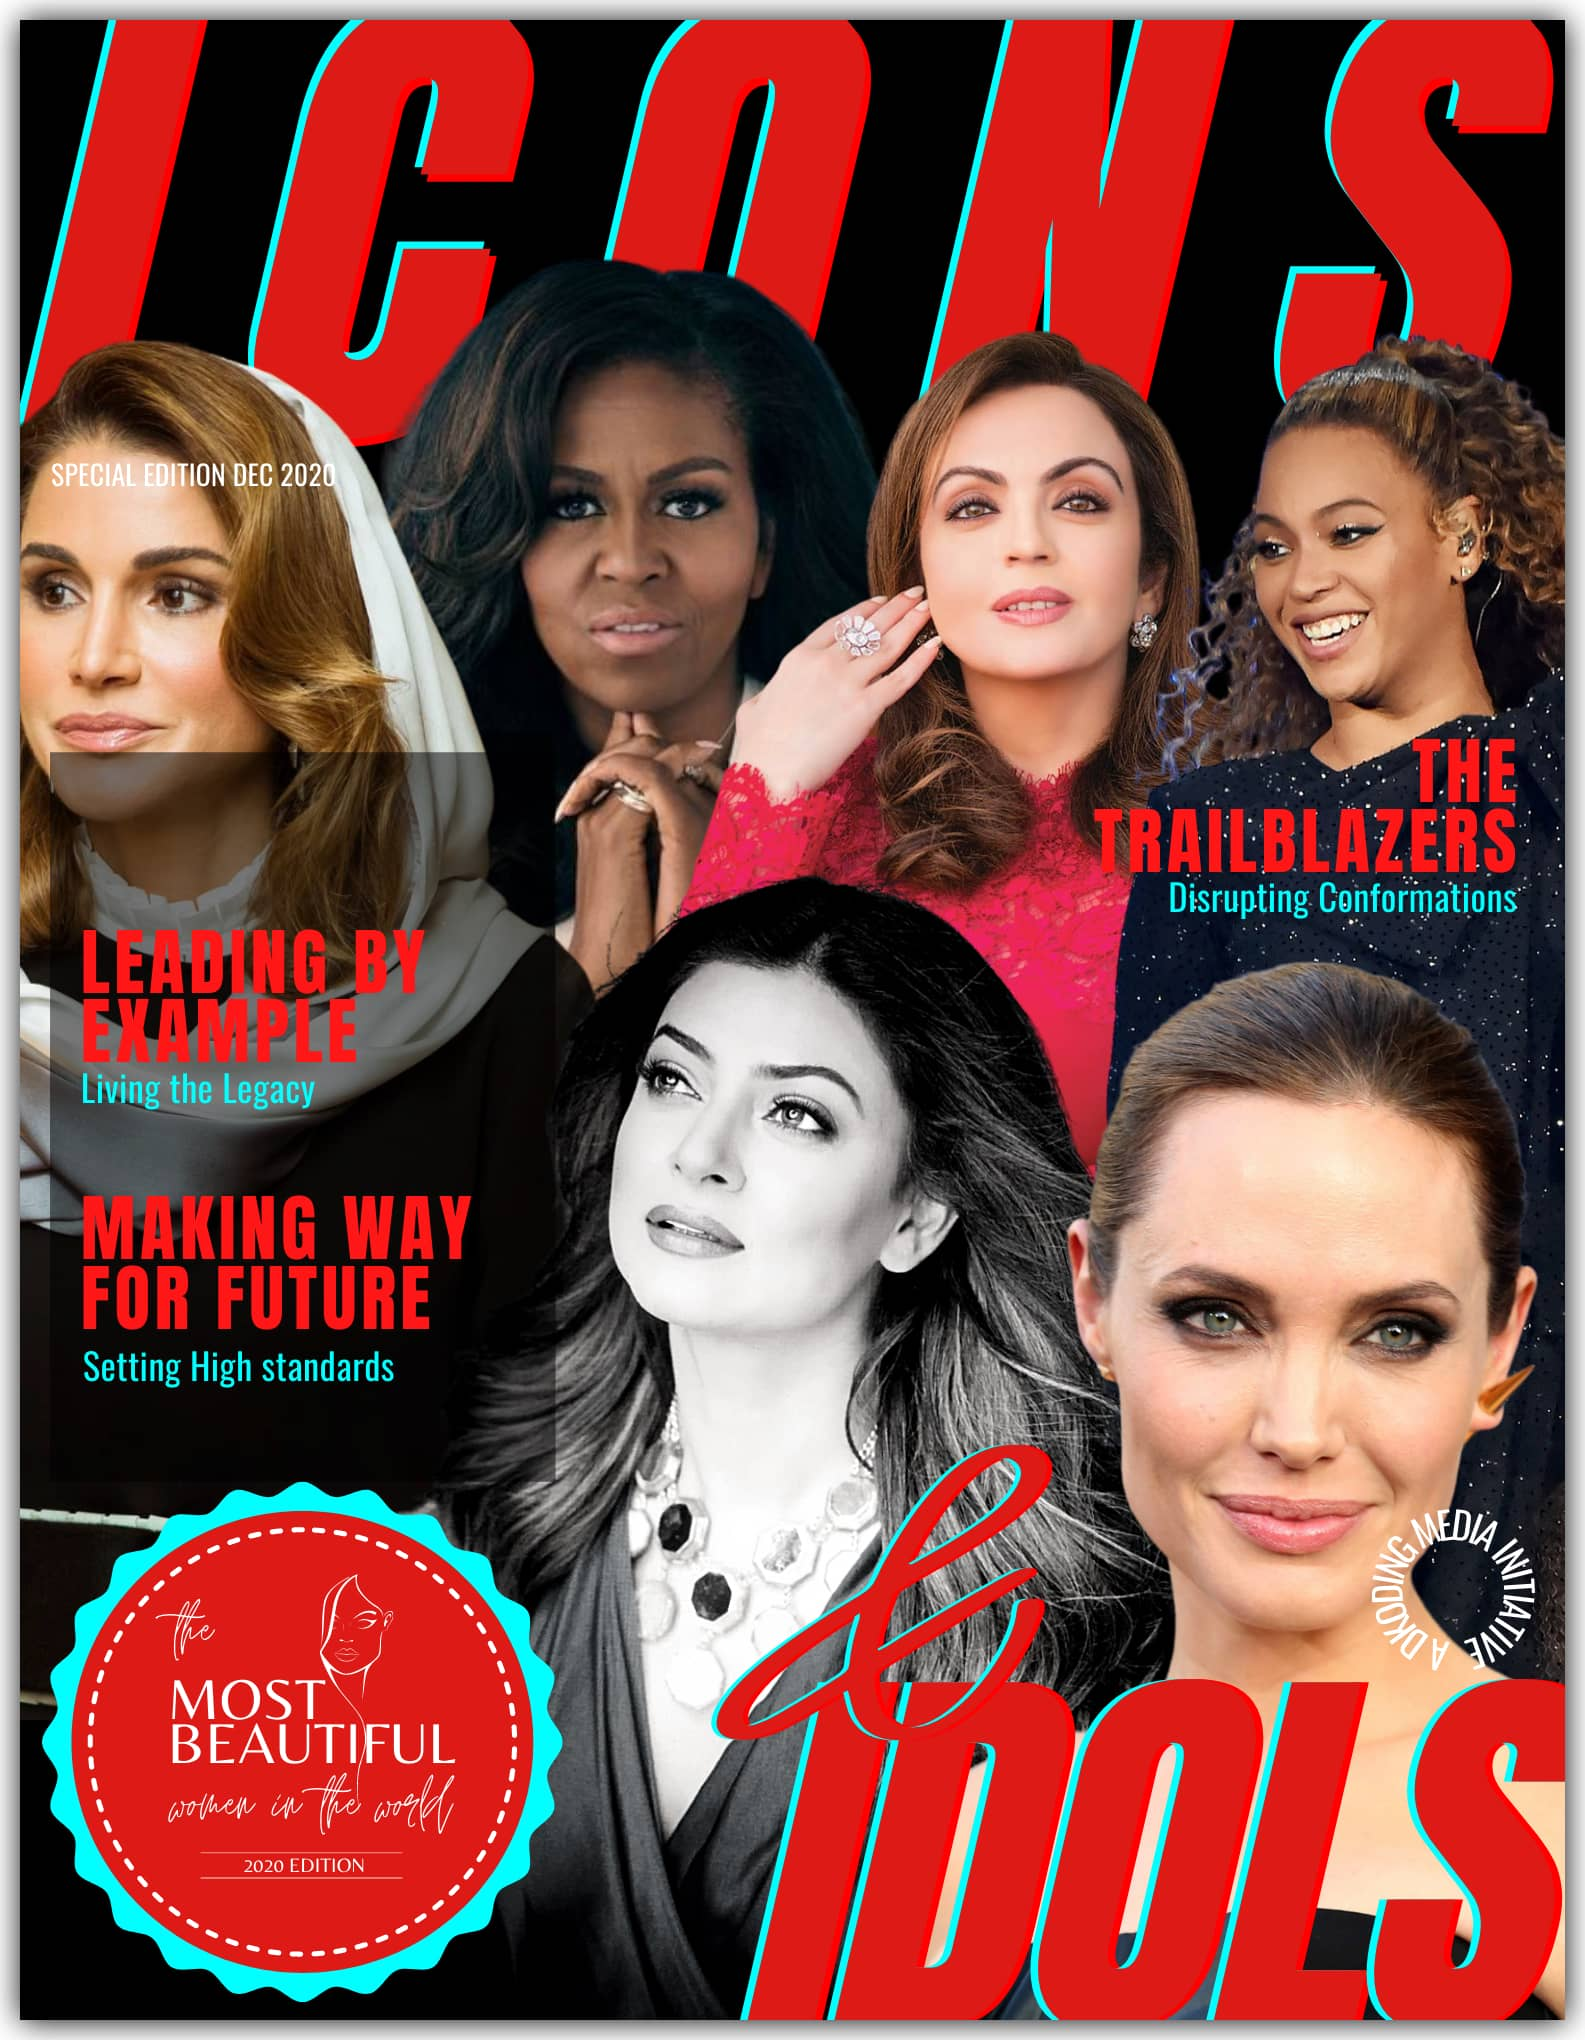 People Who Inspire PWI Most Beautiful Women in the World 2020 - Icons & Idols League - Michelle Obama, Angelina Jolie, Beyonce, Sushmita Sen, Queen Rania, Nita Ambani